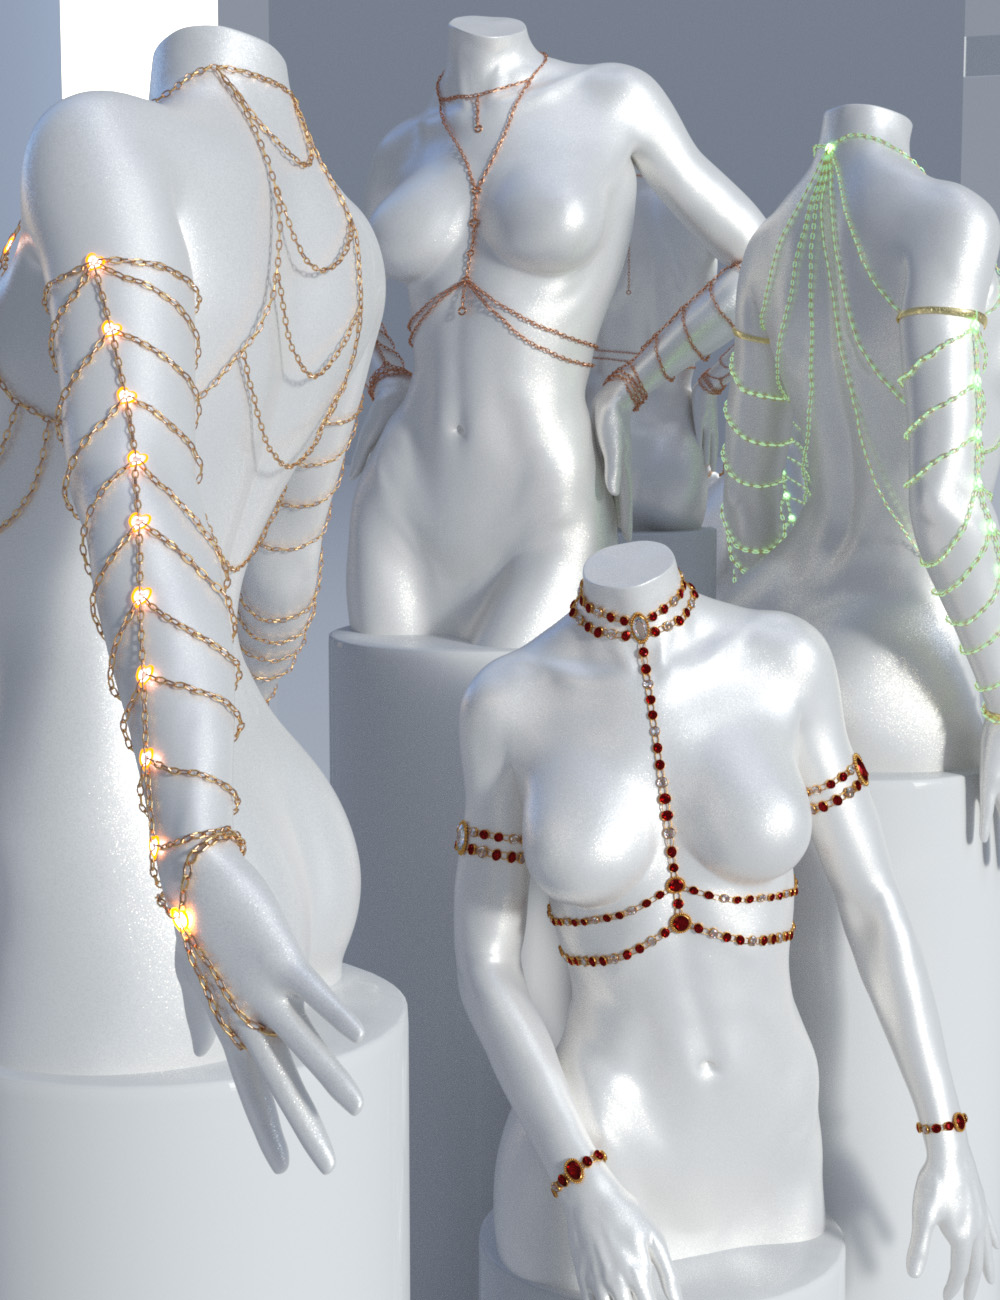 Body Chains For Genesis 3 and Genesis 8 Female(s) by: Sshodan, 3D Models by Daz 3D